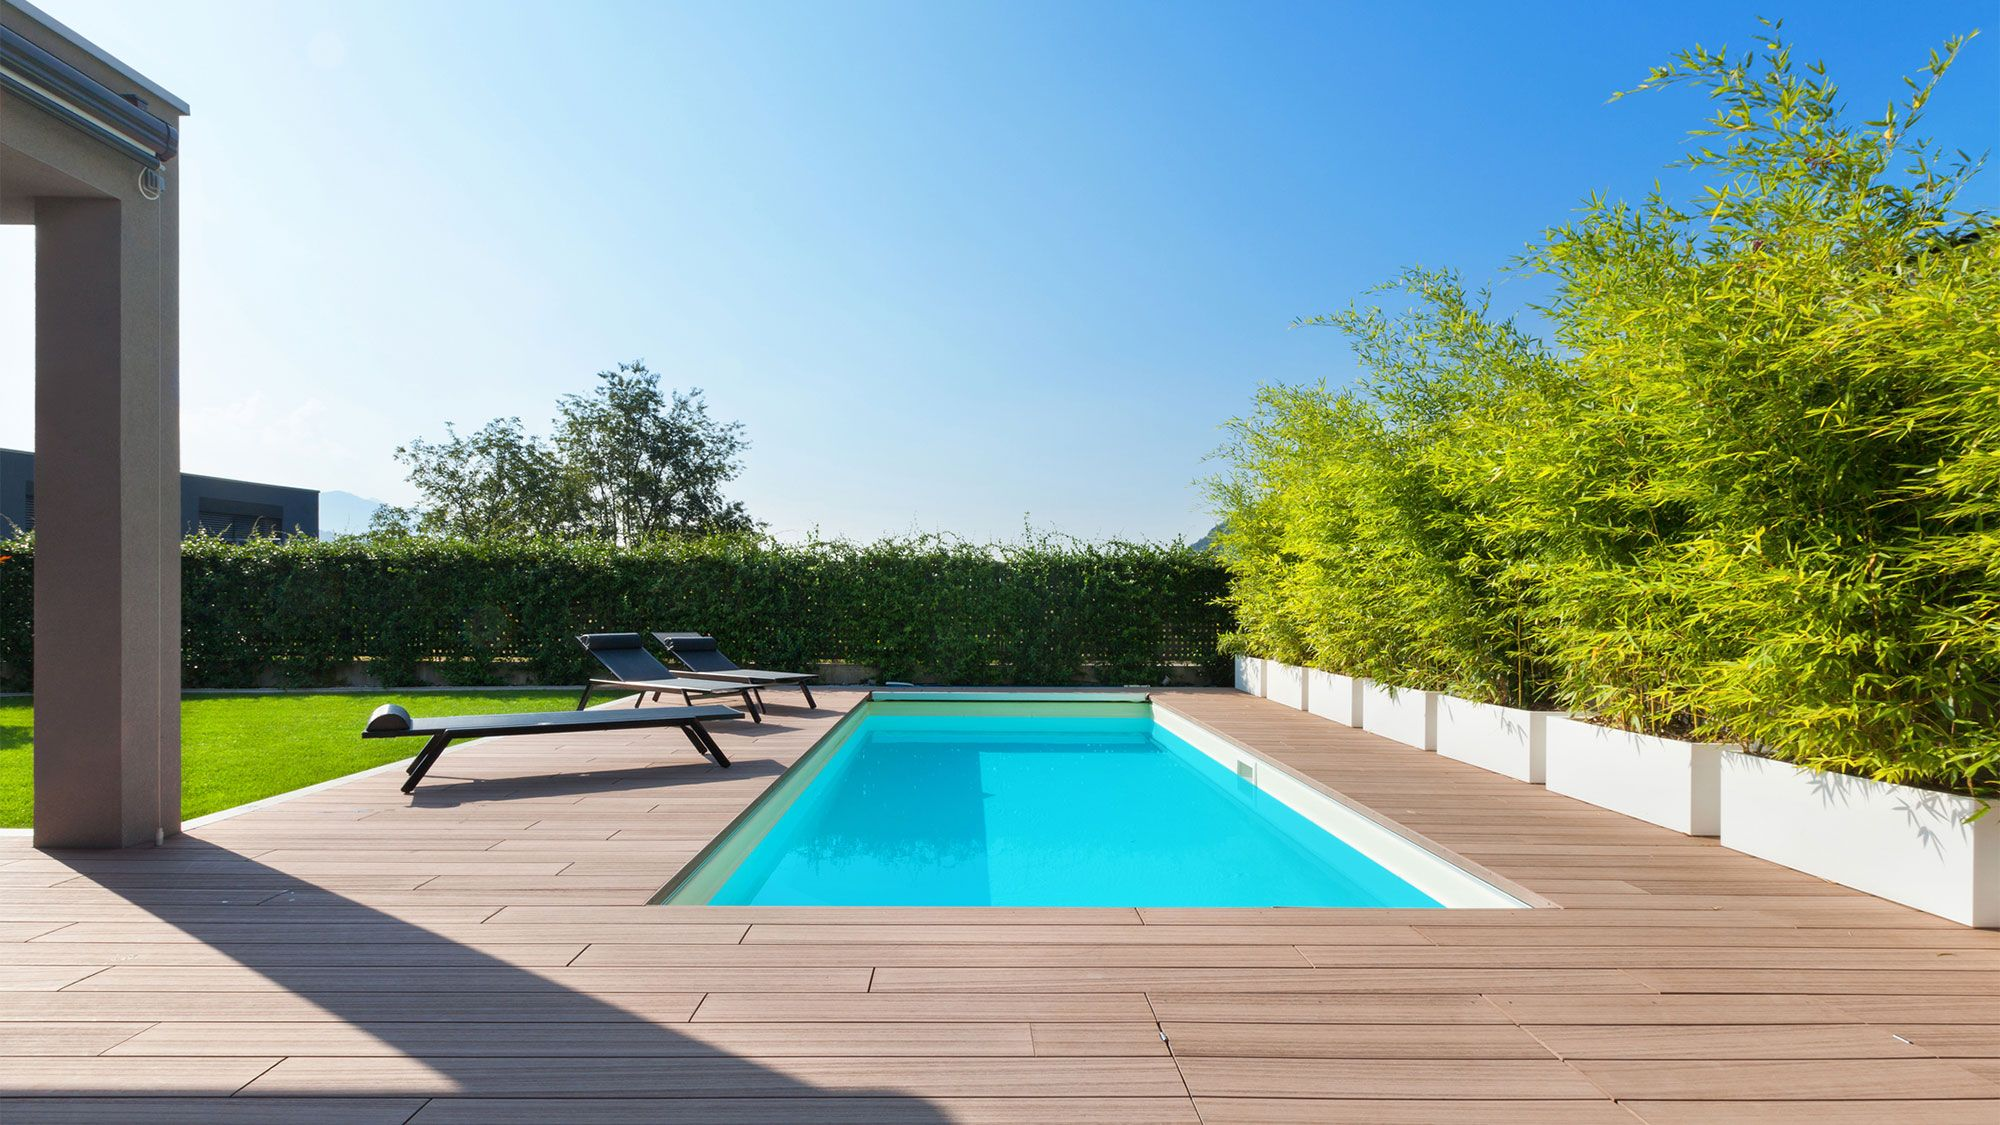 Gfk Pool Sale Does A Pool Add Value To A Home Diving Into The Pros And Cons